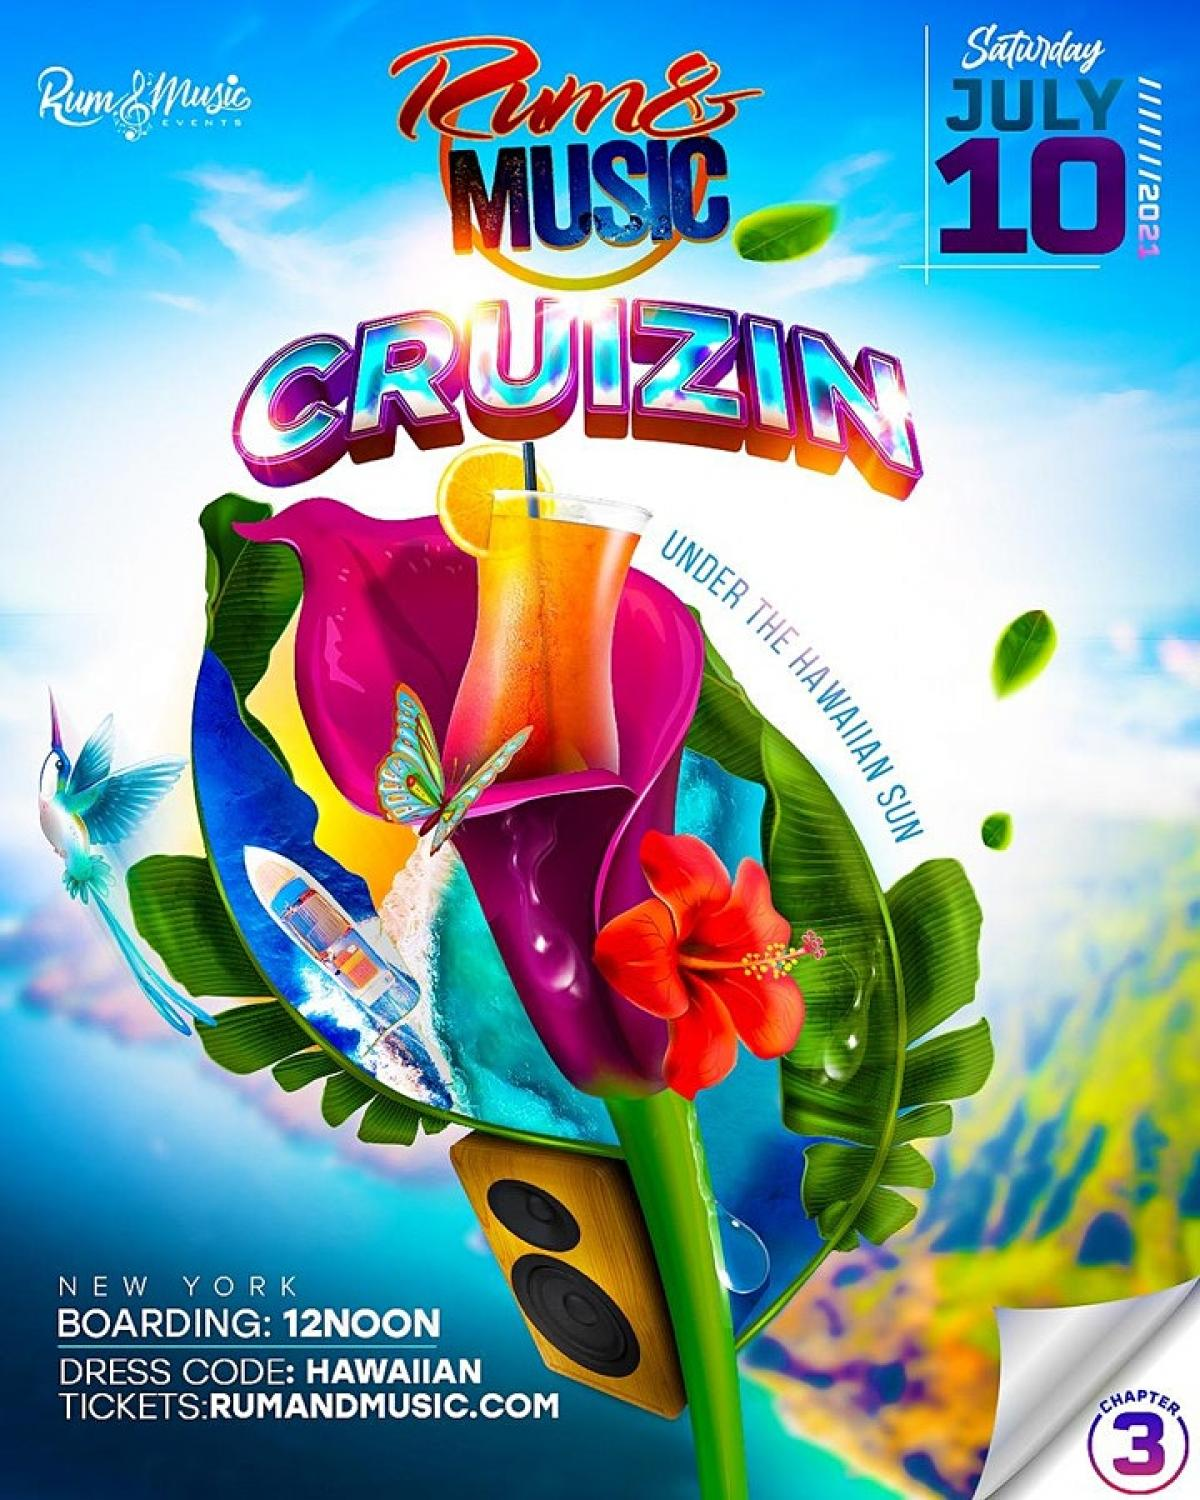 """Rum and Music """"Cruizin"""" Chapter 3: Under The Hawaiian Sun flyer or graphic."""